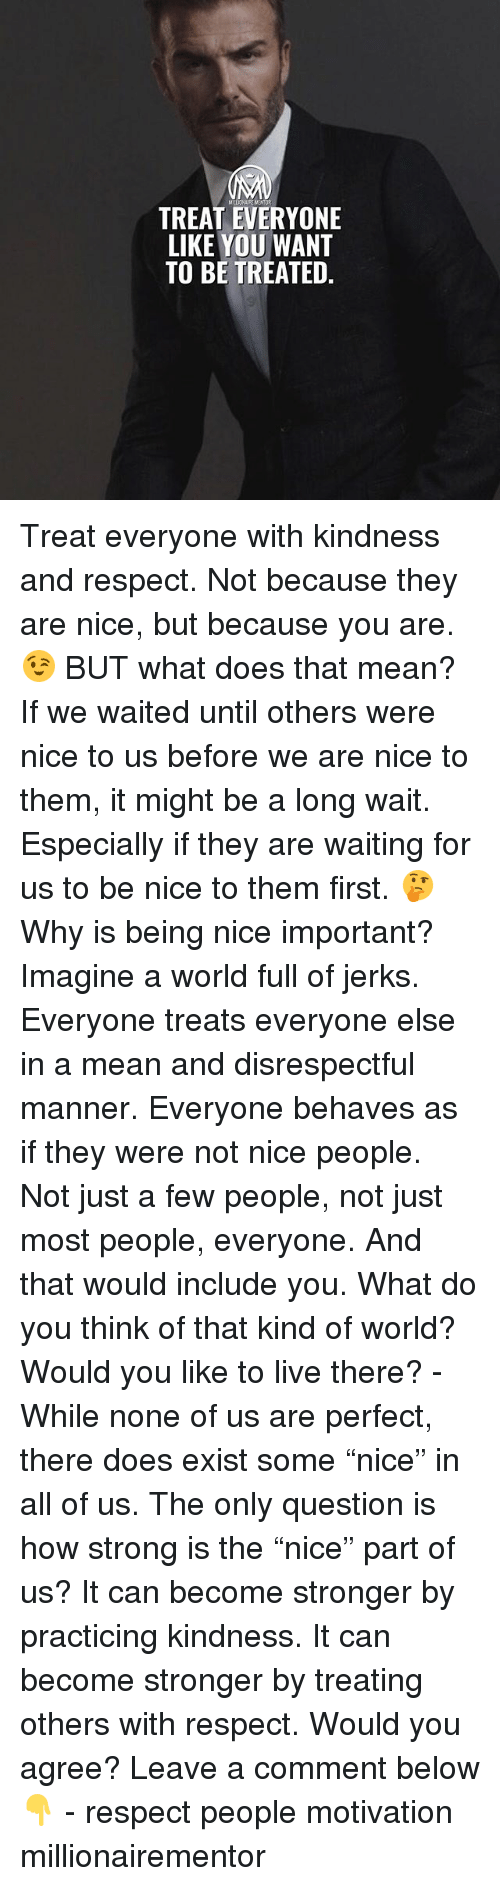 """Memes, Respect, and Live: MELOHURE MENTOR  TREAT EVERYONE  LIKE YOU WANT  TO BE TREATED. Treat everyone with kindness and respect. Not because they are nice, but because you are. 😉 BUT what does that mean? If we waited until others were nice to us before we are nice to them, it might be a long wait. Especially if they are waiting for us to be nice to them first. 🤔 Why is being nice important? Imagine a world full of jerks. Everyone treats everyone else in a mean and disrespectful manner. Everyone behaves as if they were not nice people. Not just a few people, not just most people, everyone. And that would include you. What do you think of that kind of world? Would you like to live there? - While none of us are perfect, there does exist some """"nice"""" in all of us. The only question is how strong is the """"nice"""" part of us? It can become stronger by practicing kindness. It can become stronger by treating others with respect. Would you agree? Leave a comment below 👇 - respect people motivation millionairementor"""